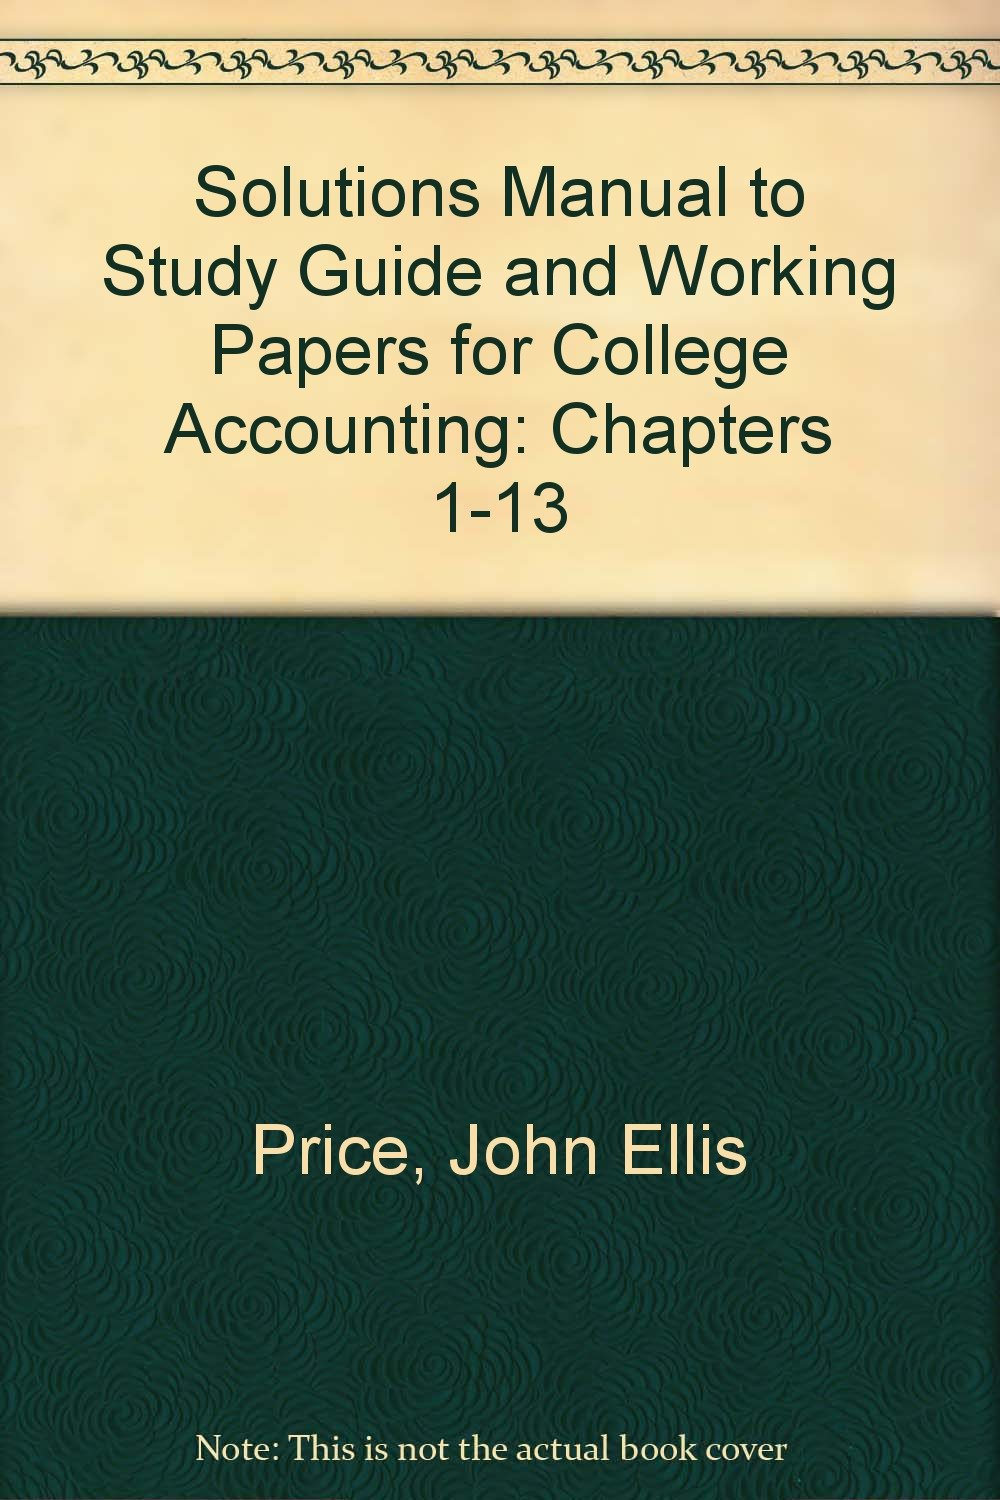 Solutions Manual to Study Guide and Working Papers for College Accounting:  Chapters 1-13: John Ellis; Brock, Horace R.; Haddock, M. David Price: ...